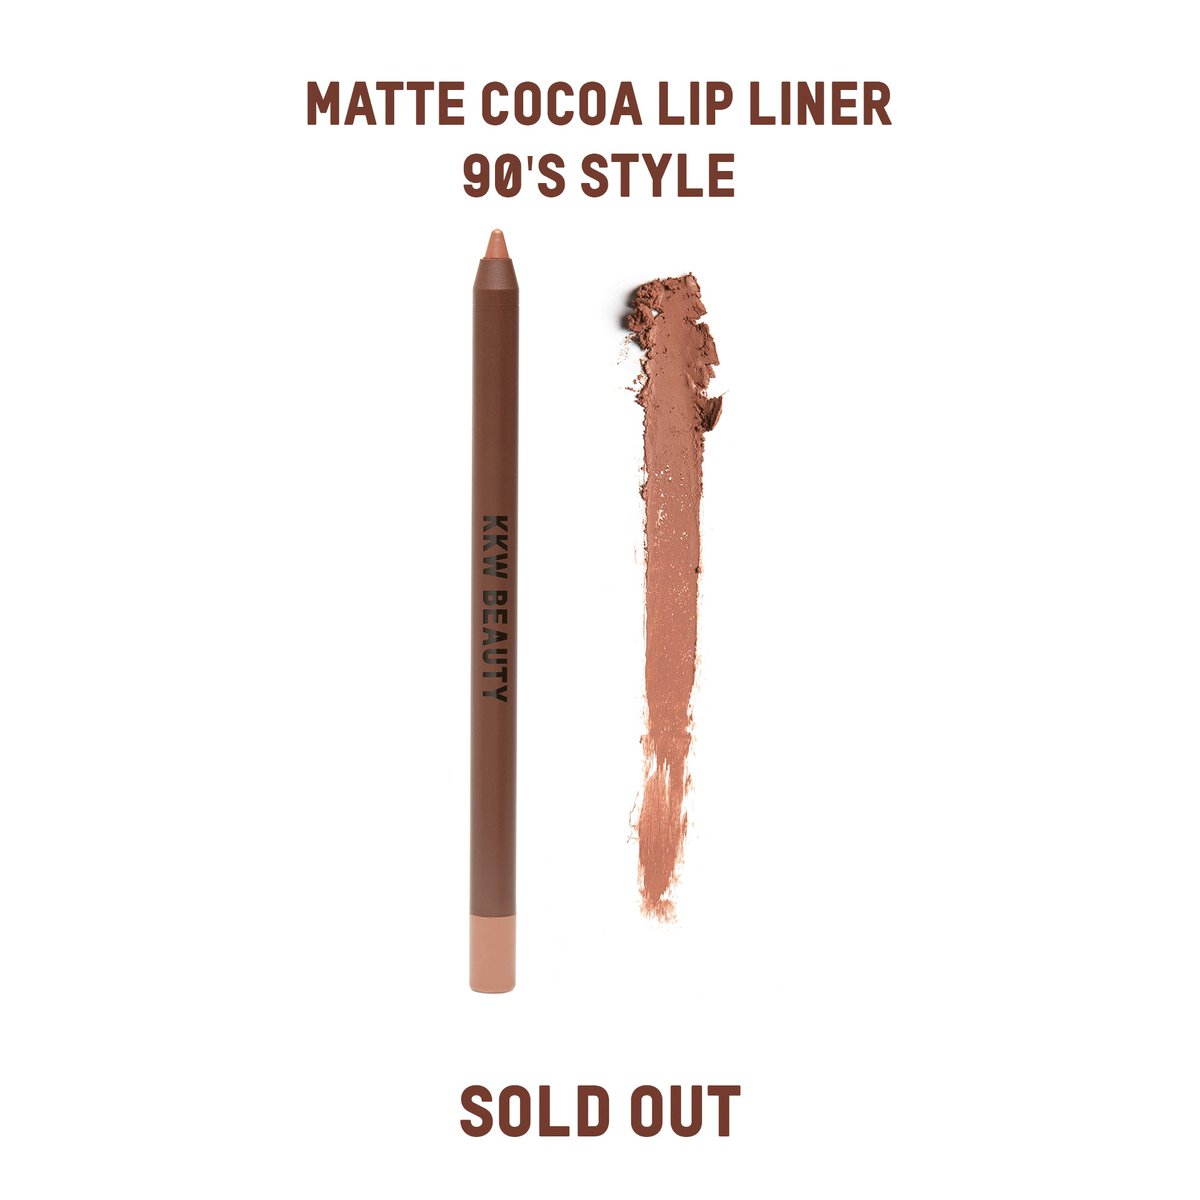 The Matte Cocoa Lip Liner in 90's Style is SOLD OUT! We still have Lipsticks, Lip Liners, Eyeliners and Eyeshadow Palettes available to shop individually at  http://KKWBEAUTY.COM   #KKWBEAUTY